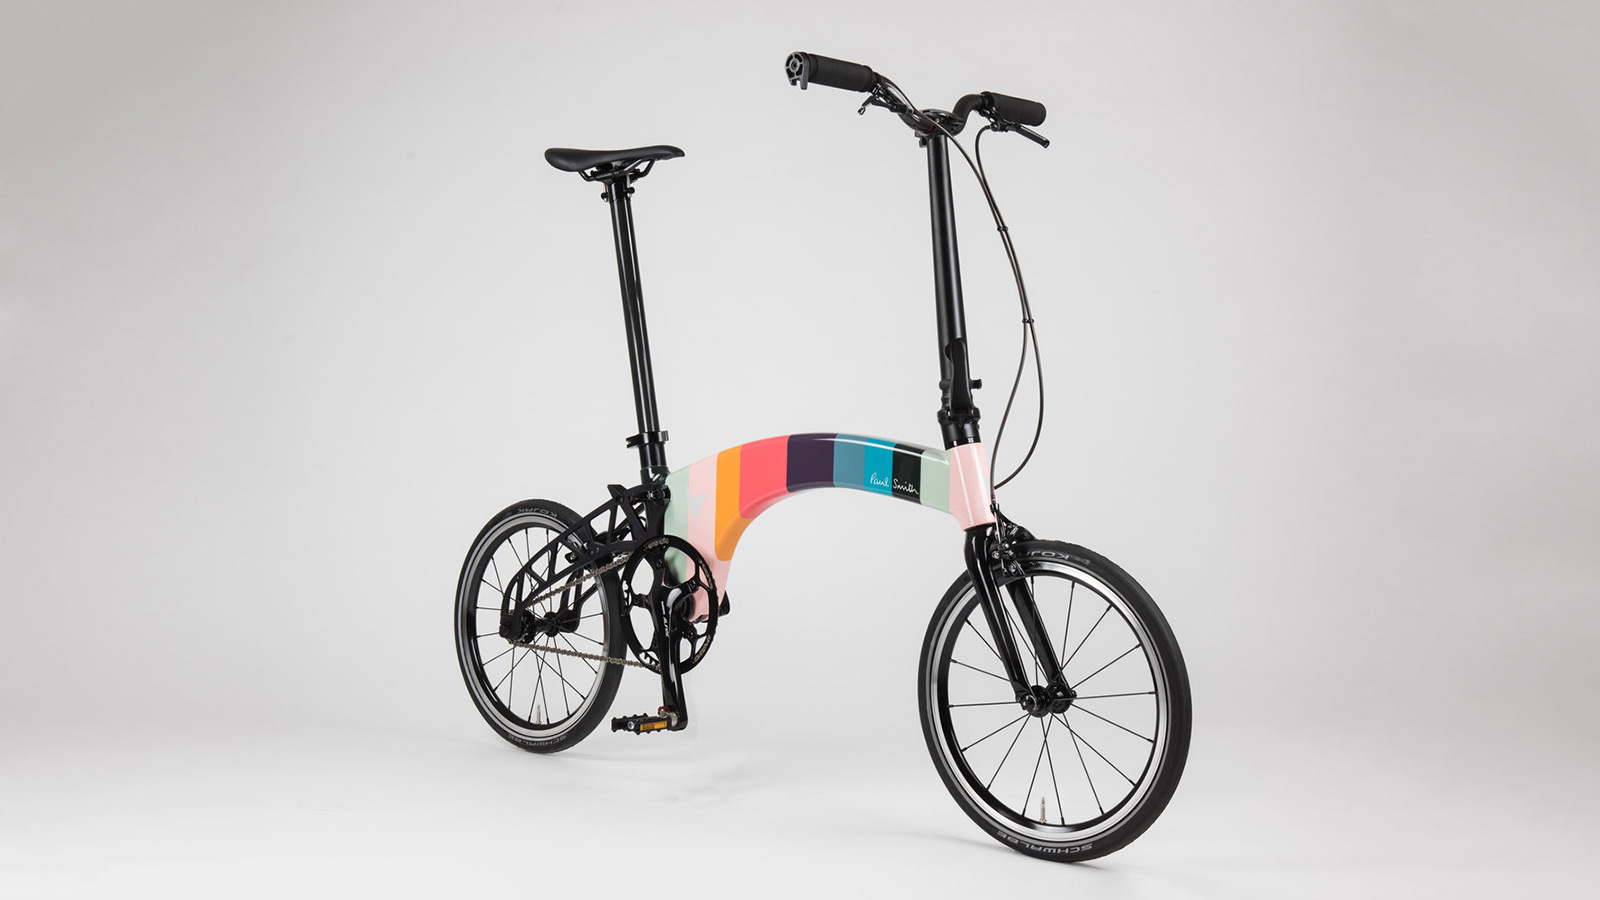 Paul Smith x Hummingbird Limited Edition Single Speed